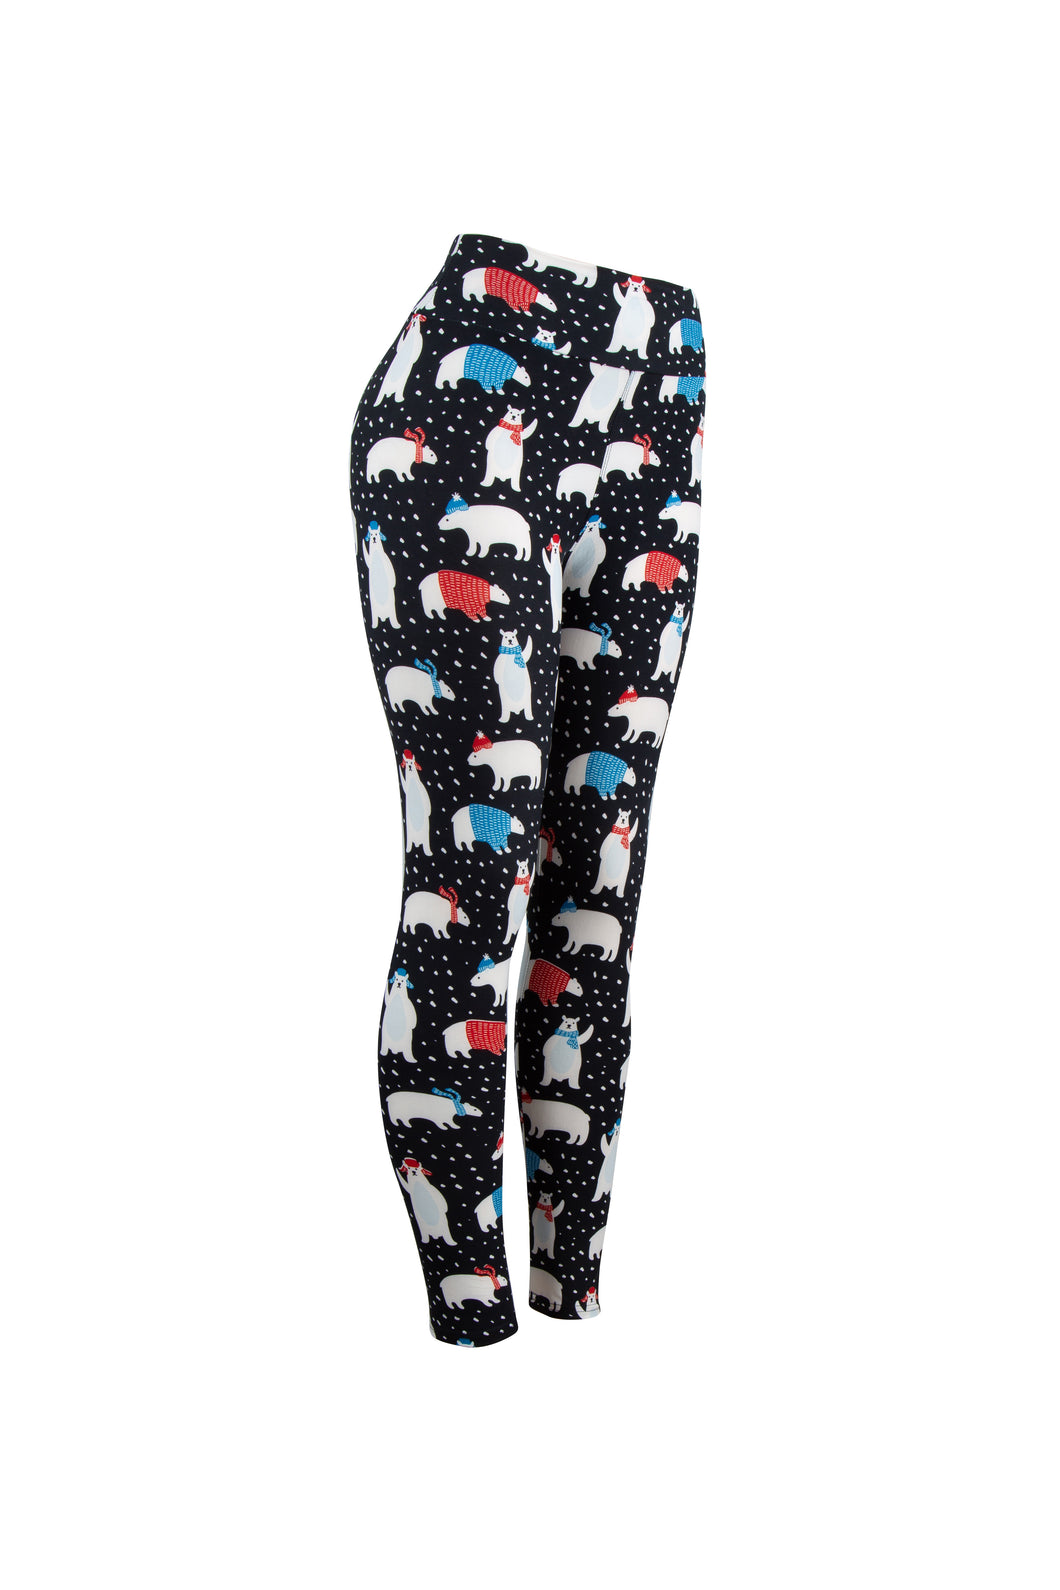 Natopia Polar Bear Christmas Leggings One Size Fits 8-14 LIMITED STOCK AVAILABLE